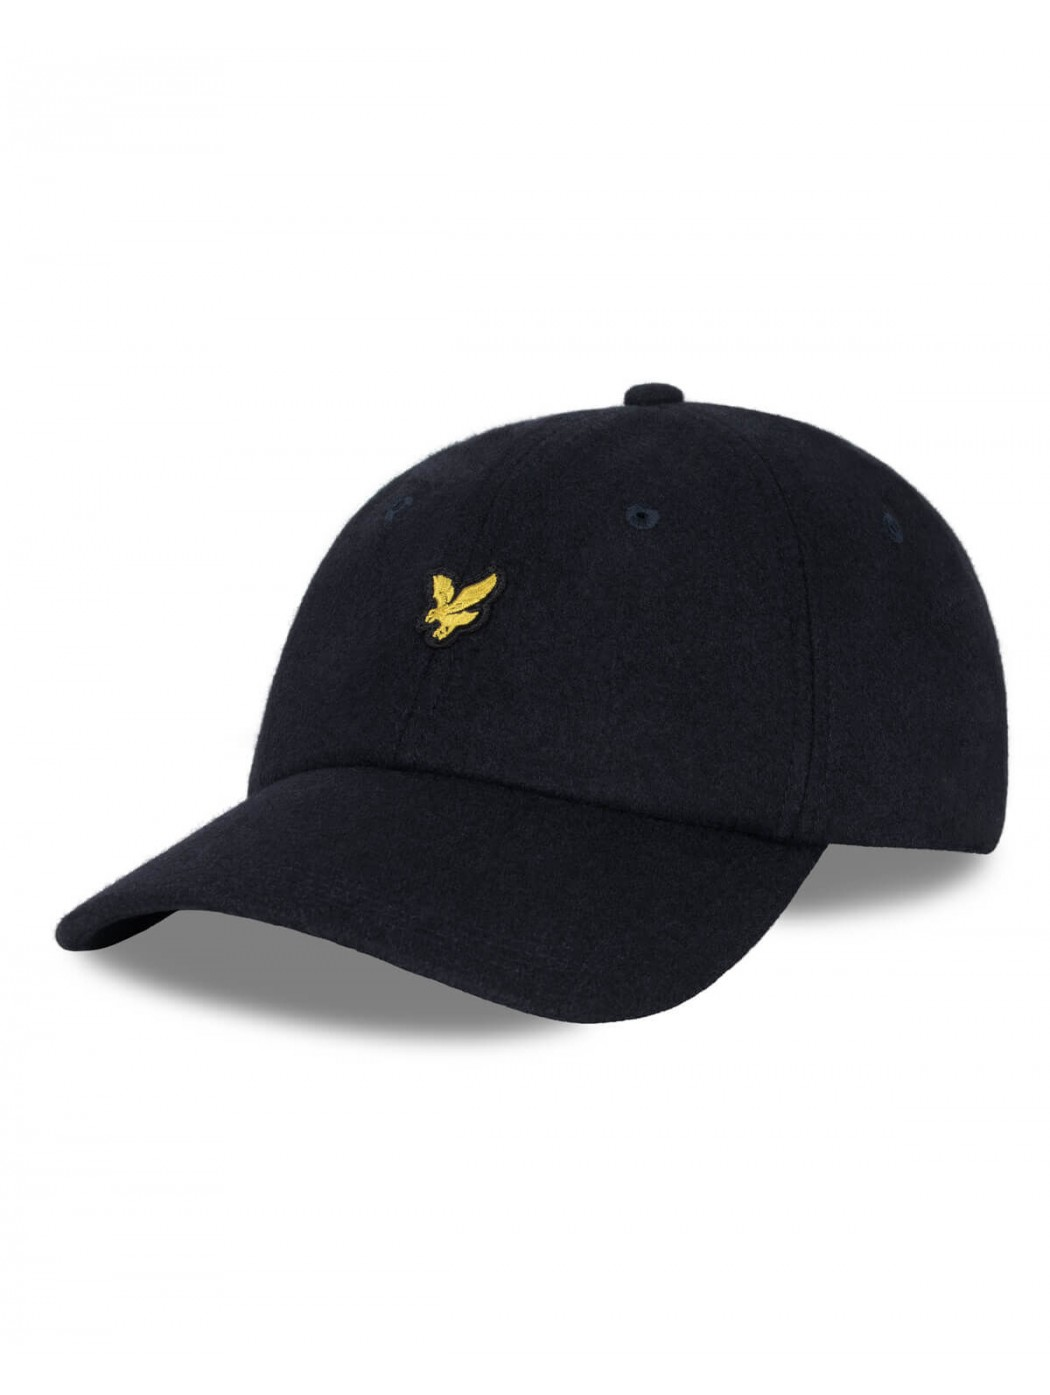 BERRETTO DA BASEBALL LYLE & SCOTT HE1100A Z271